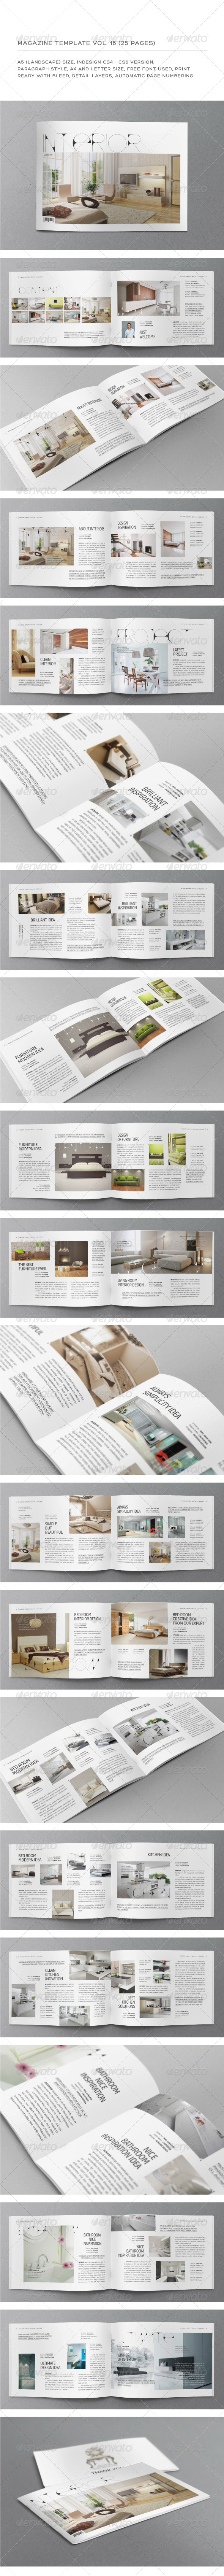 A5 Landscape 25 Pages mgz (Vol. 16) - Magazines Print Templates